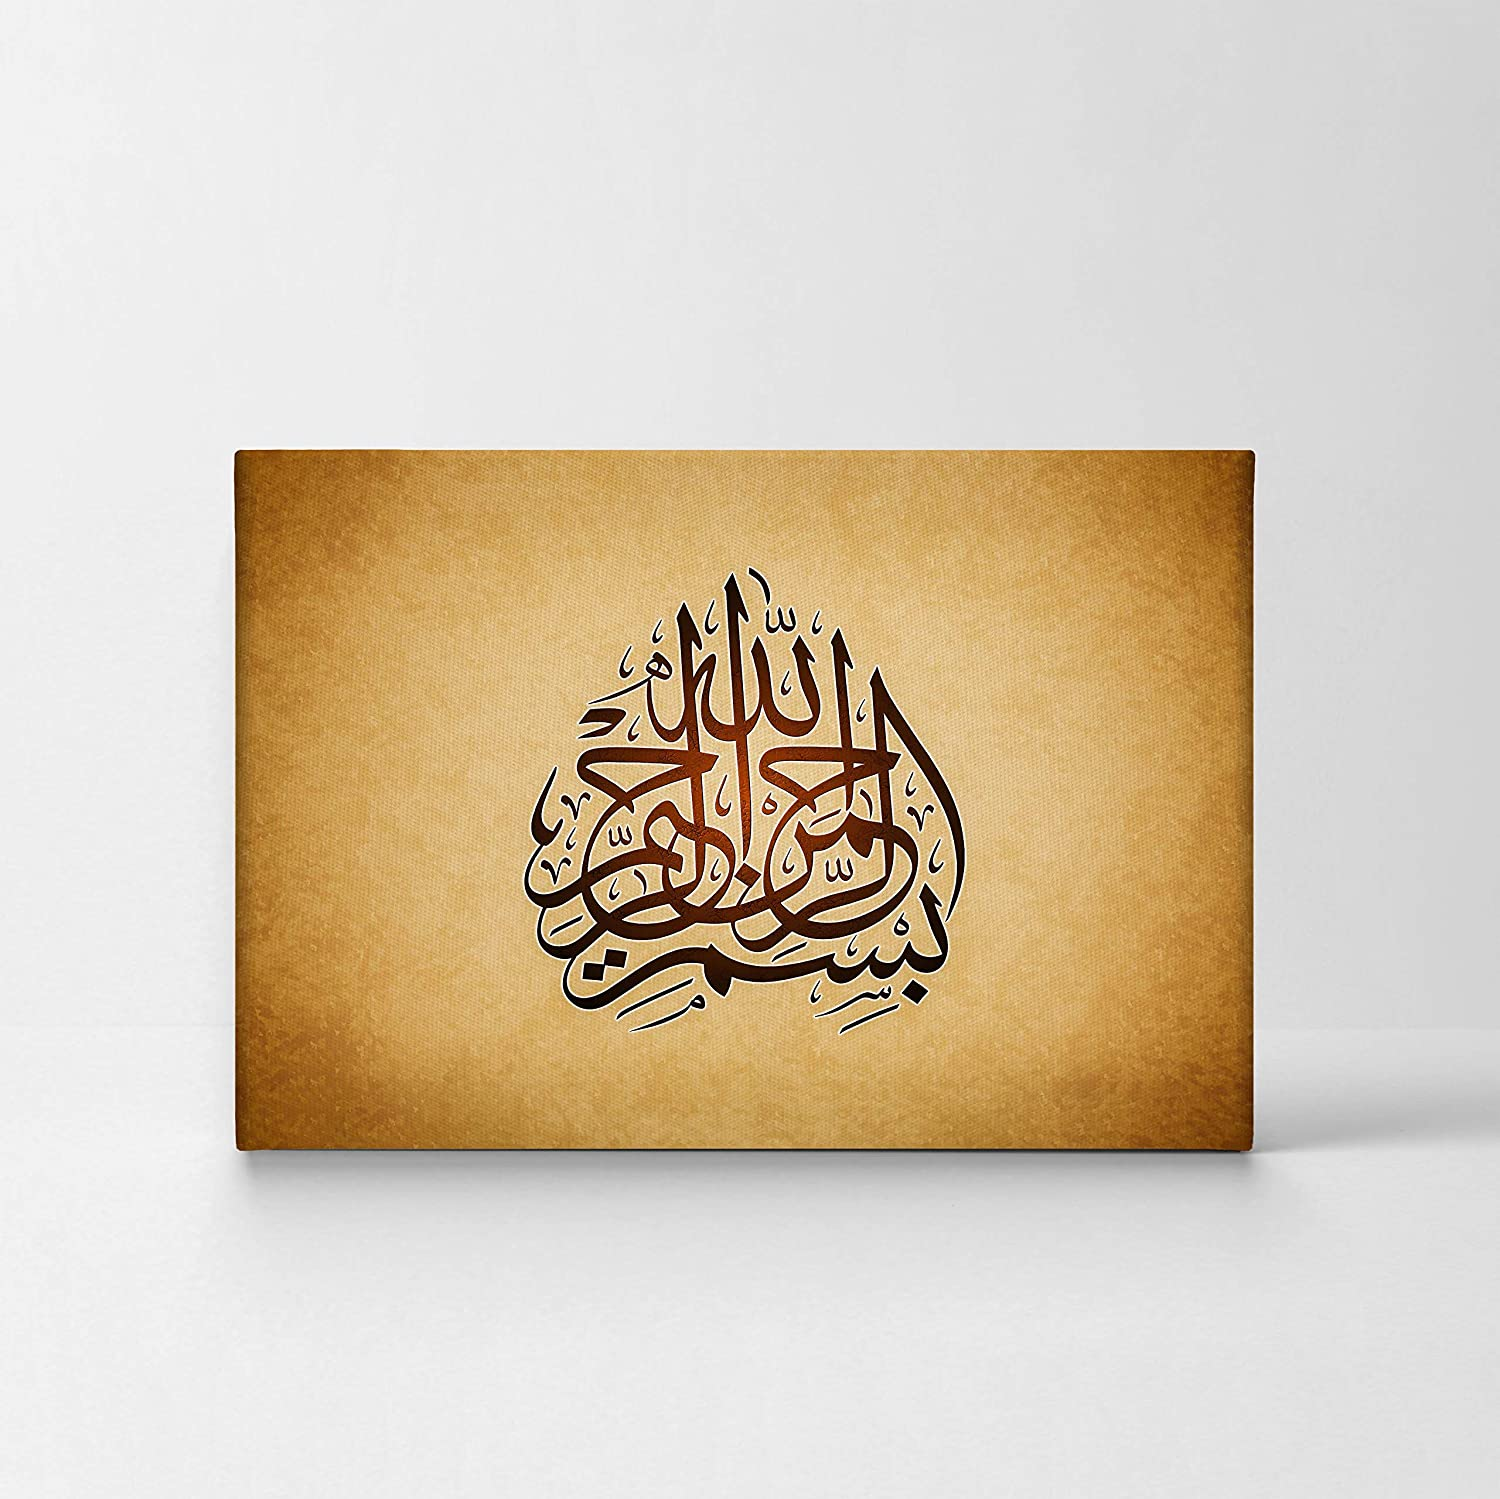 Smileartdesign islamic wall art bismillah calligraphy canvas print home decor arabic calligraphy decorative artwork gallery stretched and ready to